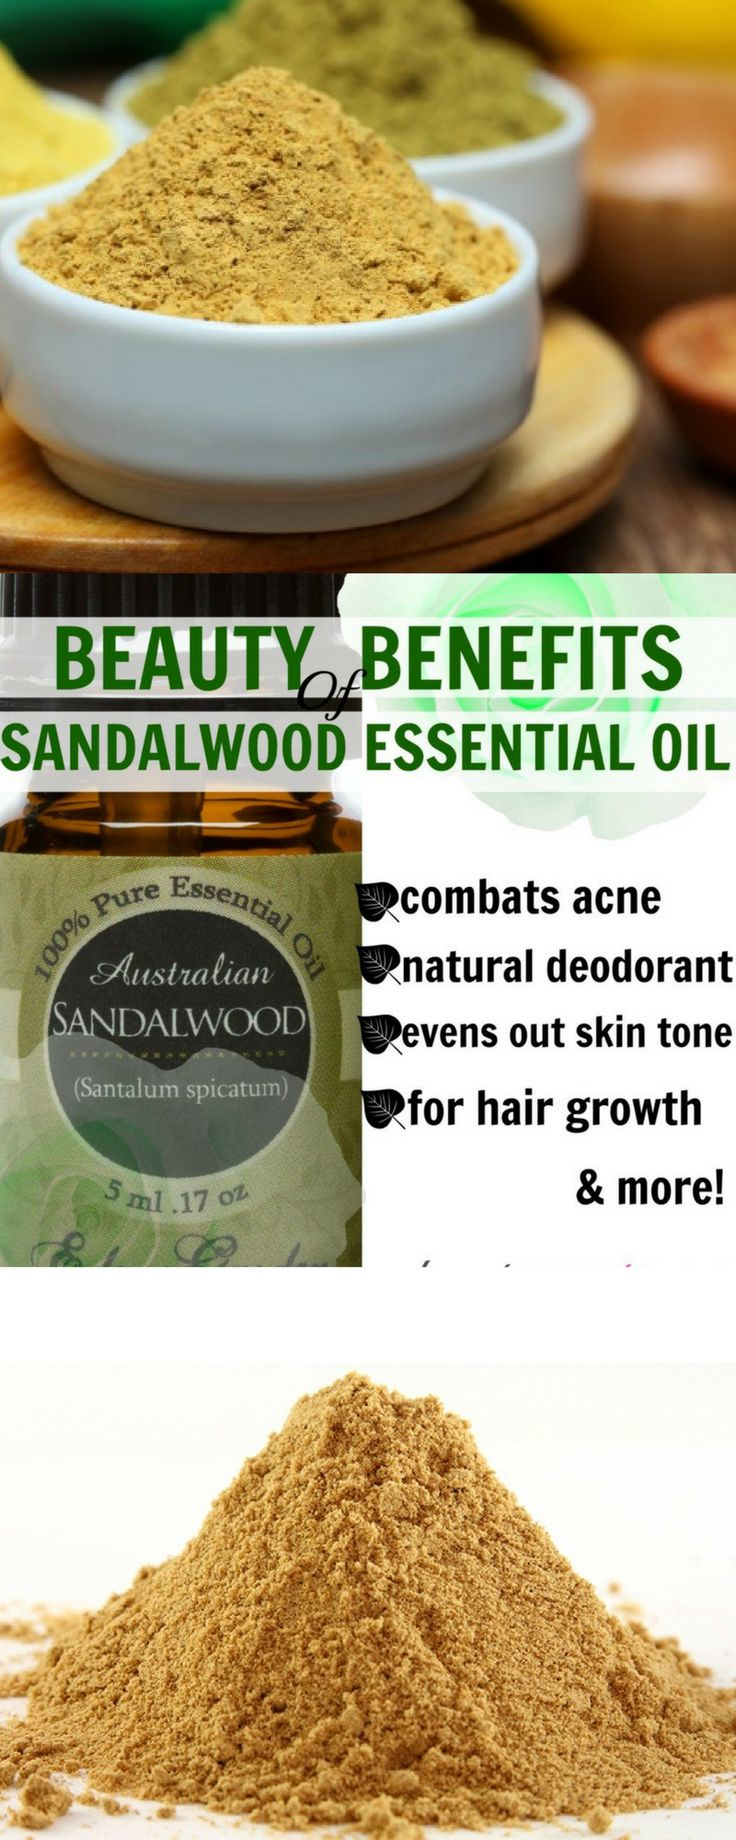 5 SANDALWOOD BENEFITS TO LOOK OUT FOR: FROM TAN REMOVAL TO TREATING ACNE ;